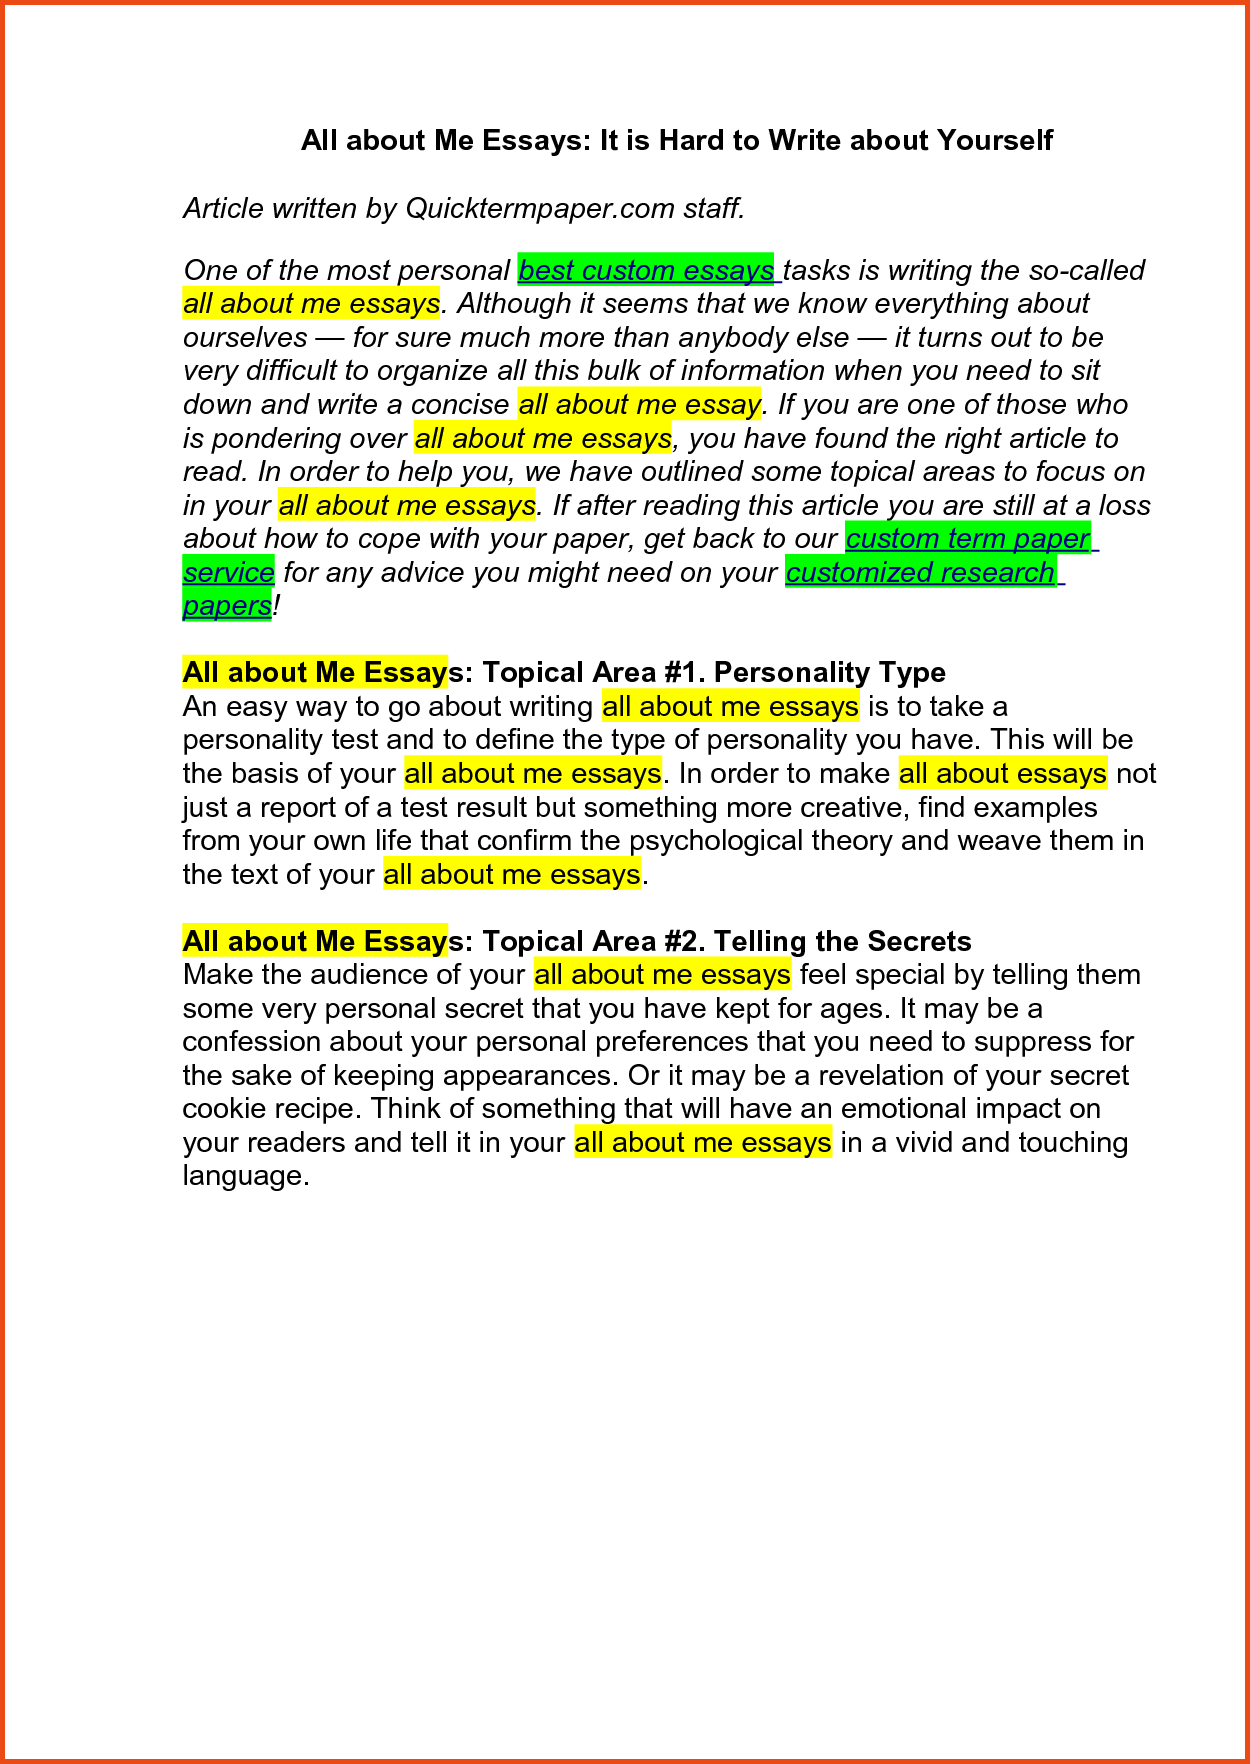 010 Sample College Admissions Essay Good Mba Essays School Application How To Start Your Confortable Resume About Yourselfs In Admis Write Off Strong App Steps Successful Formidable Yourself Example Of Autobiography Tagalog A Narrative Examples Introduction Full